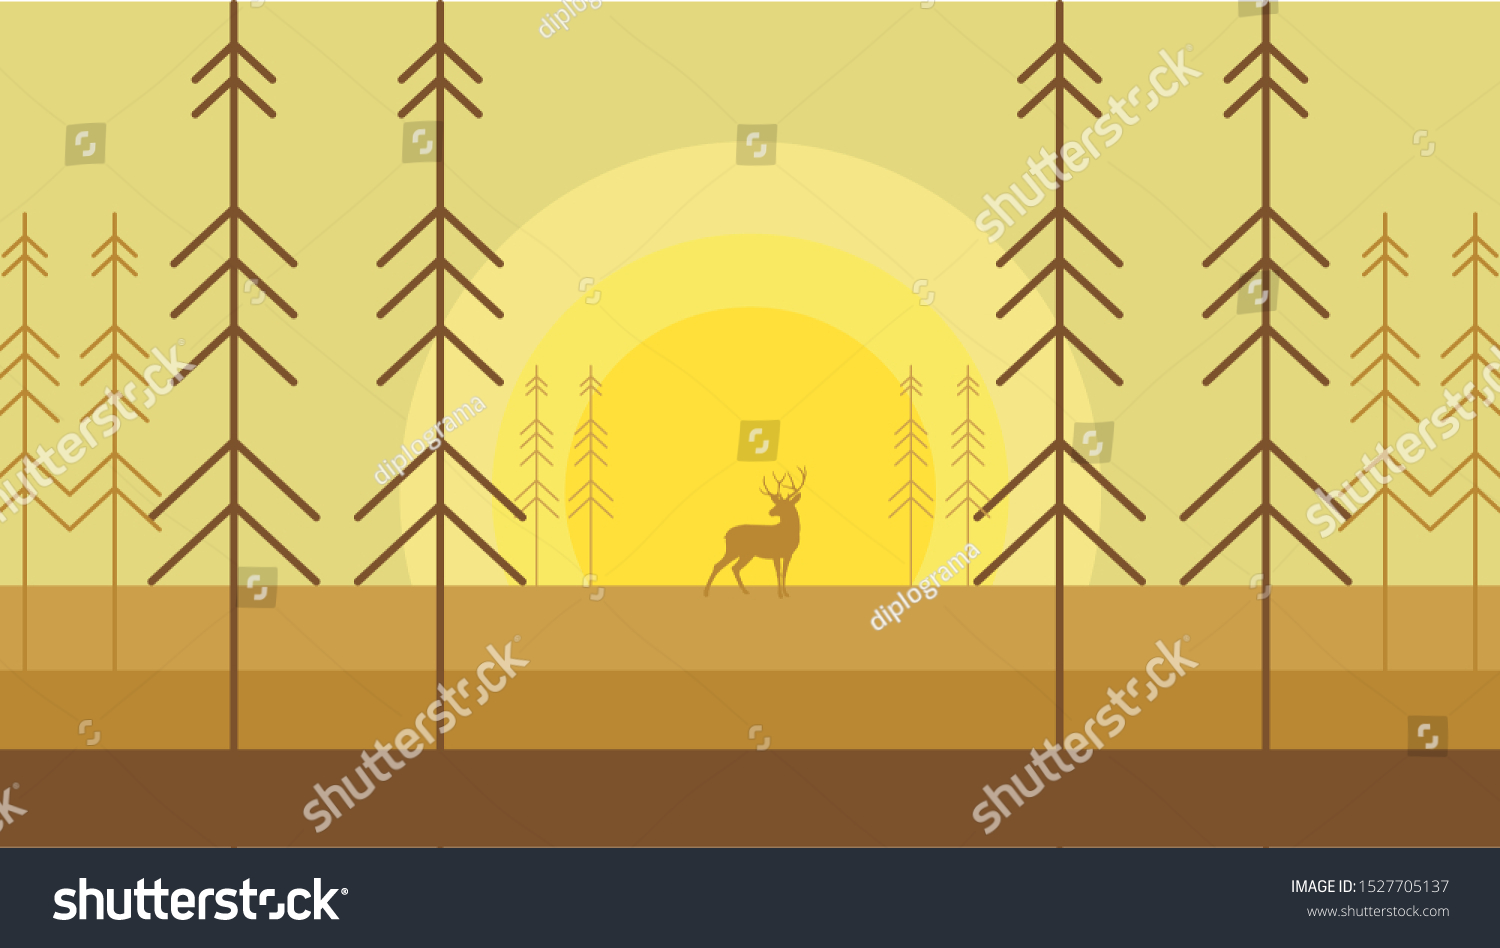 Wallpaper Deers Sillhouette Autumn Forest Sunset Stock Vector Royalty Free 1527705137